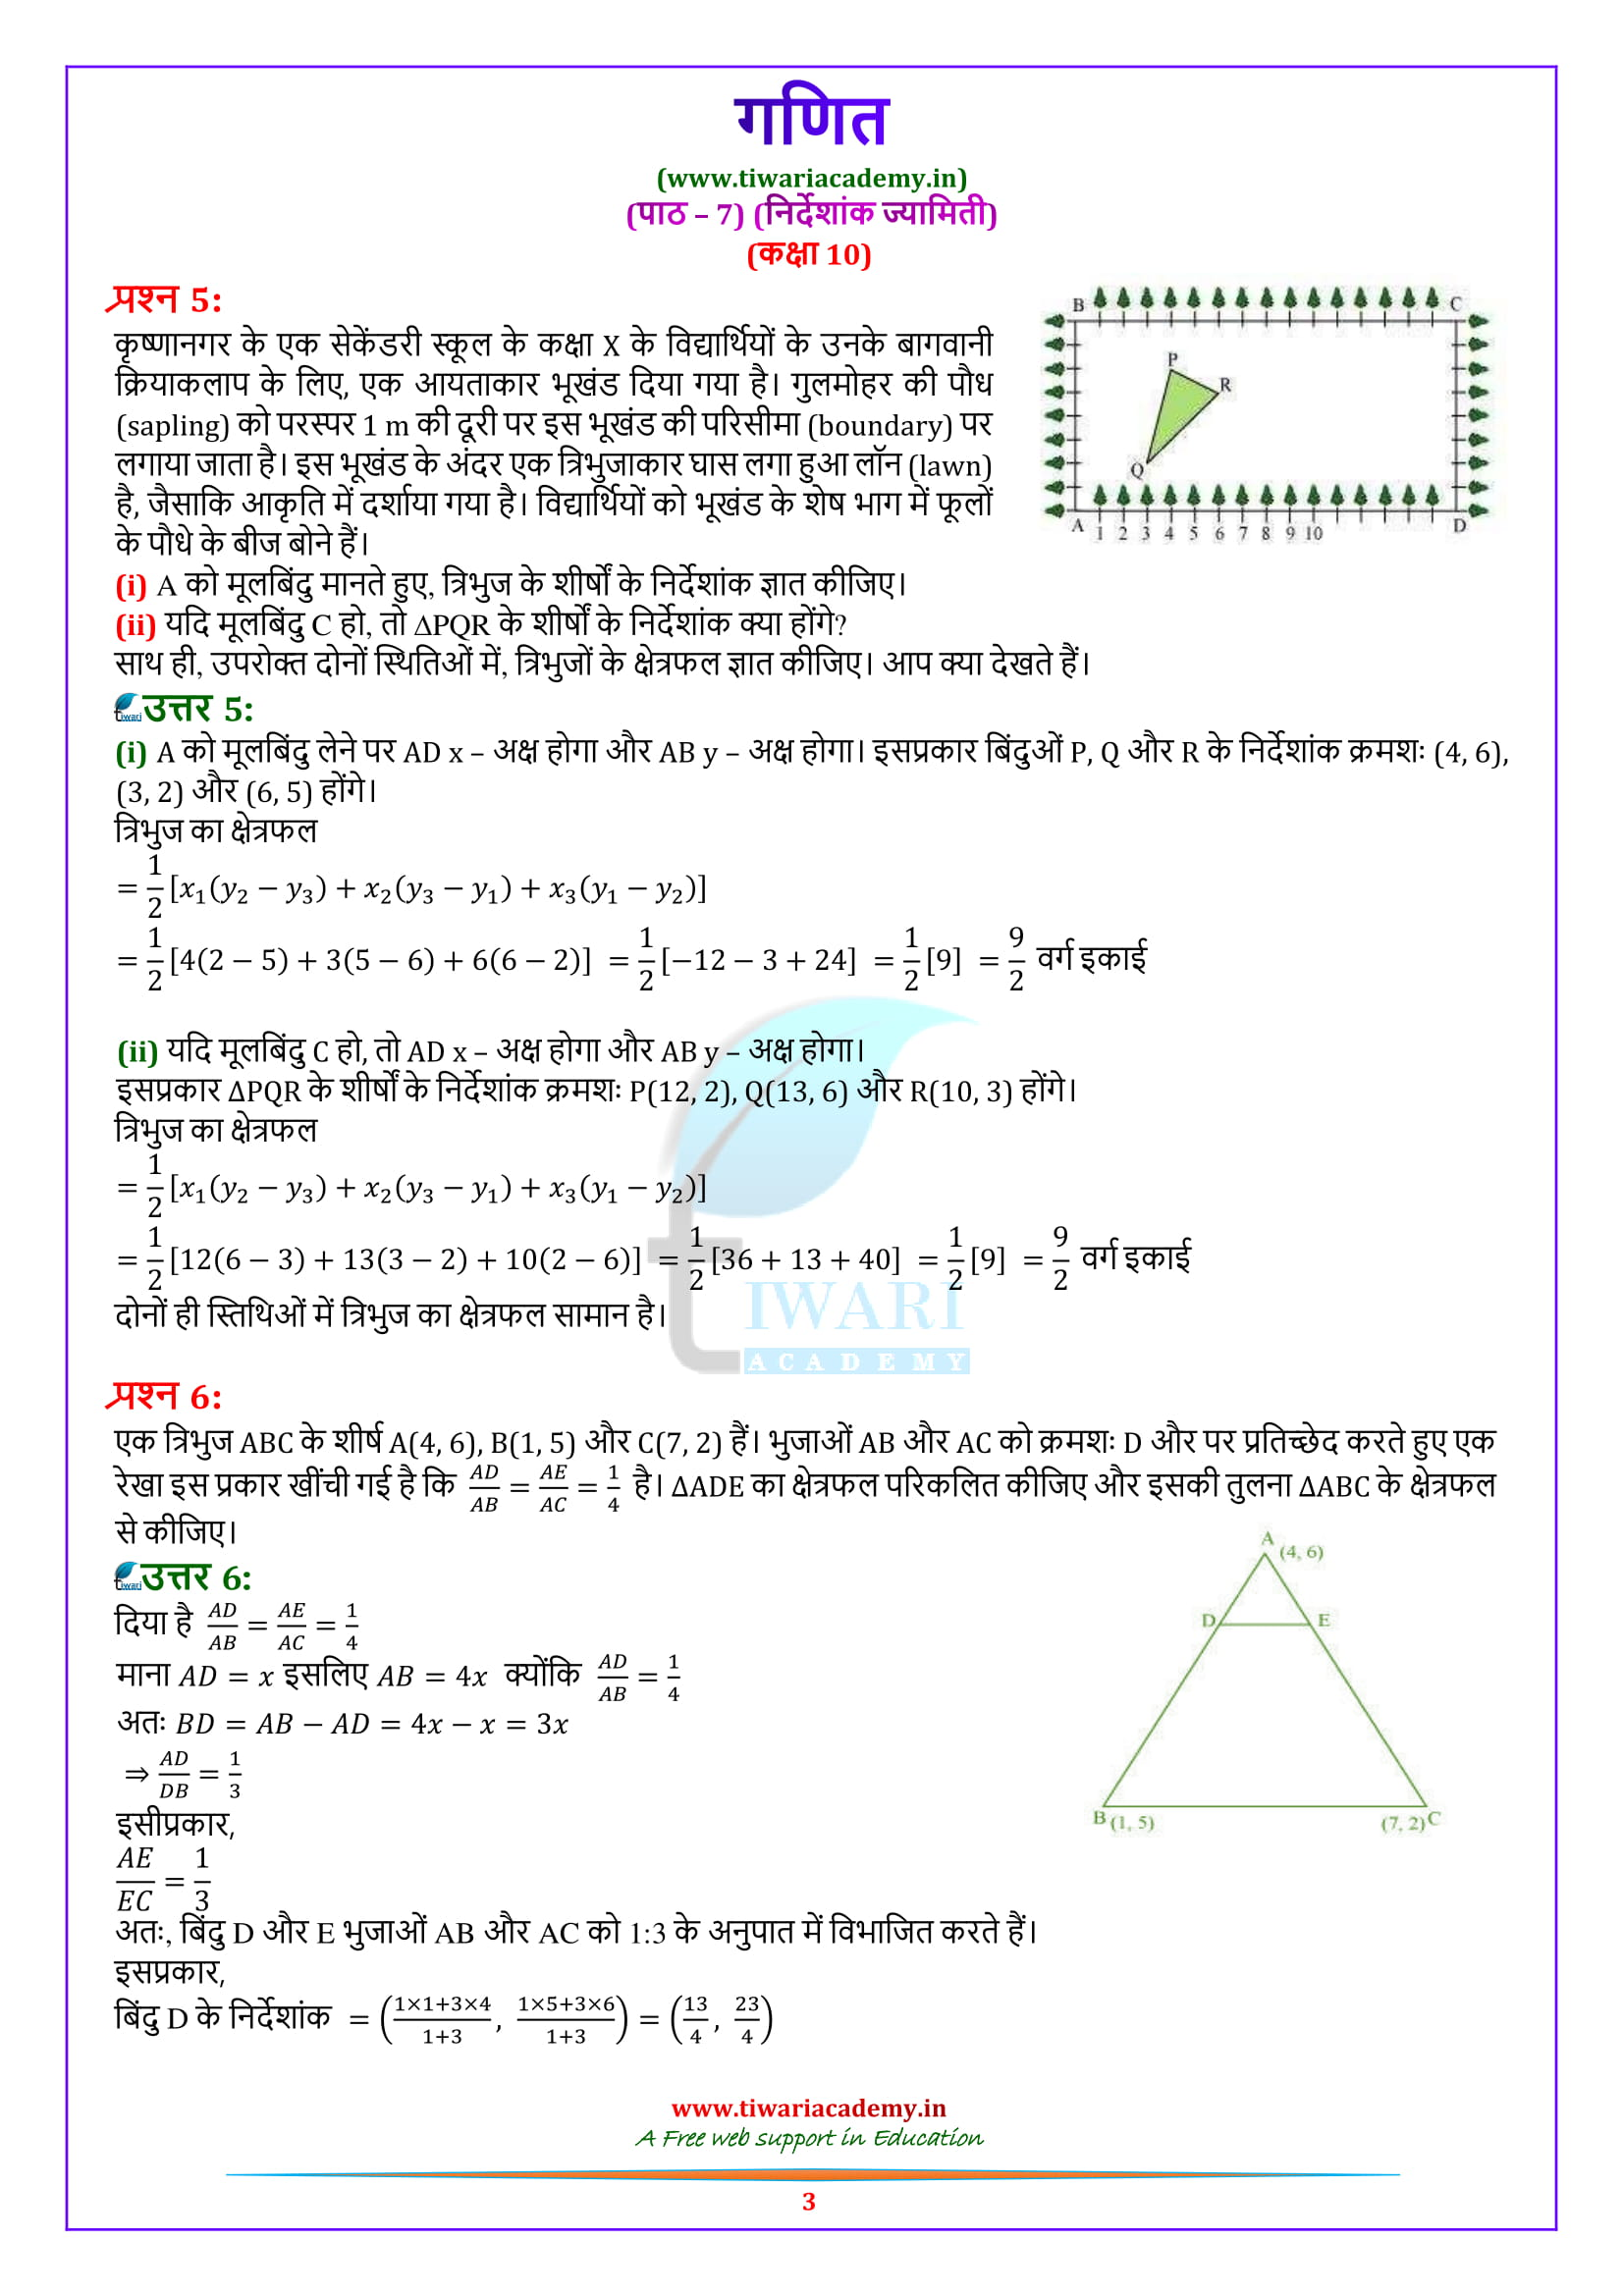 Class 10 Maths Exercise 7.4 Solutions guide for 2018-19